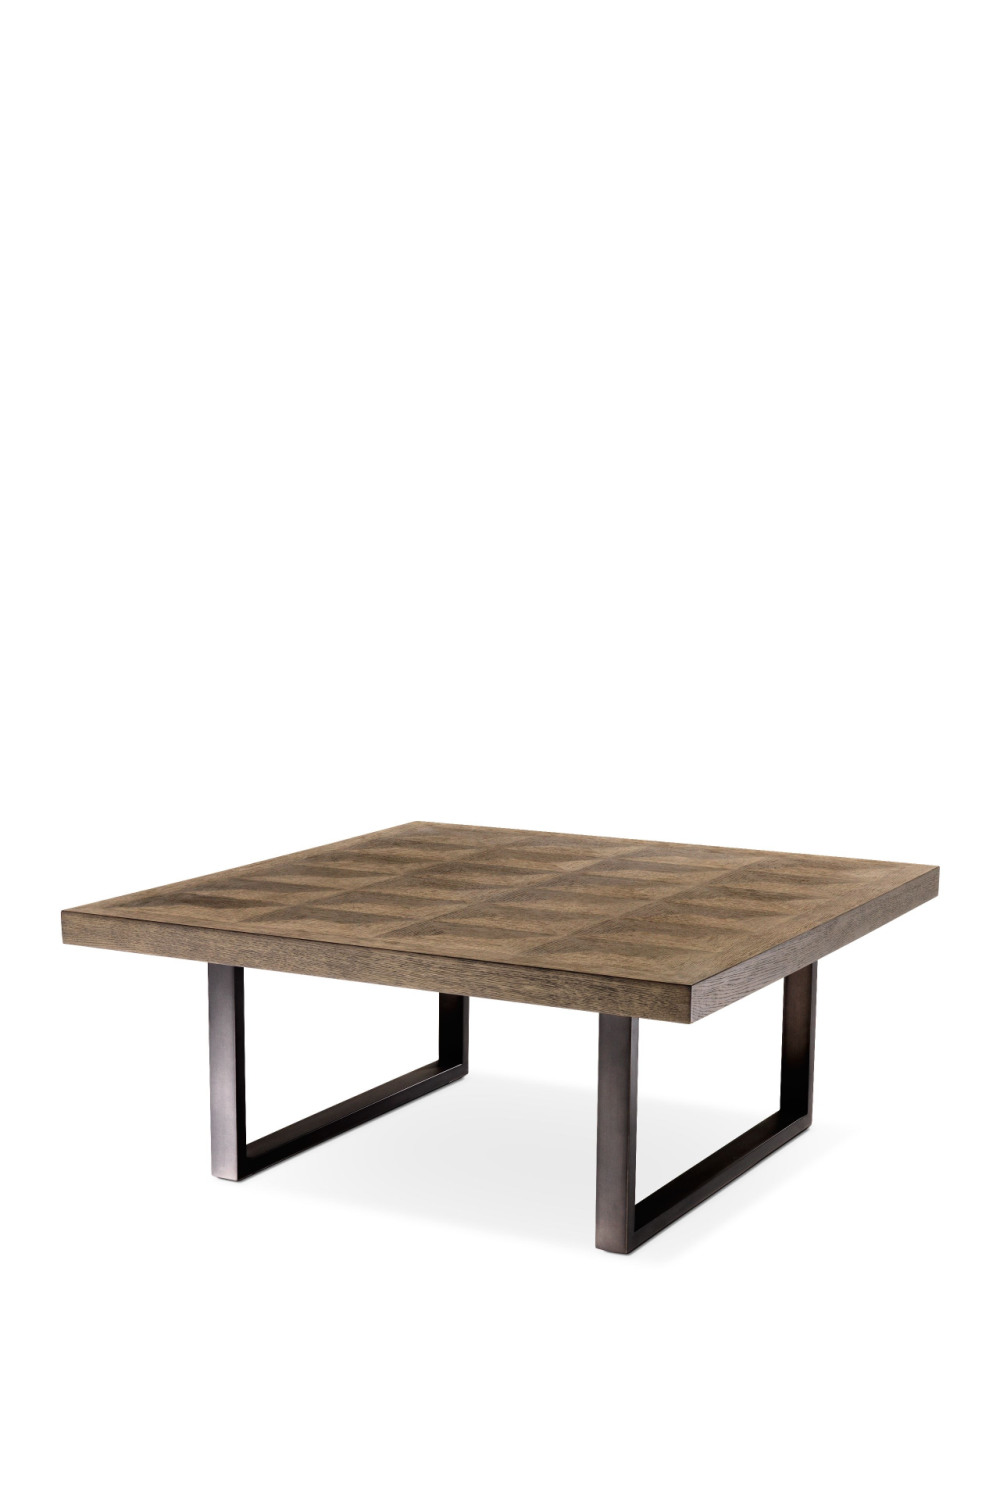 Industrial Oak Coffee Table | Eichholtz Gregorio | Woodfurniture.com